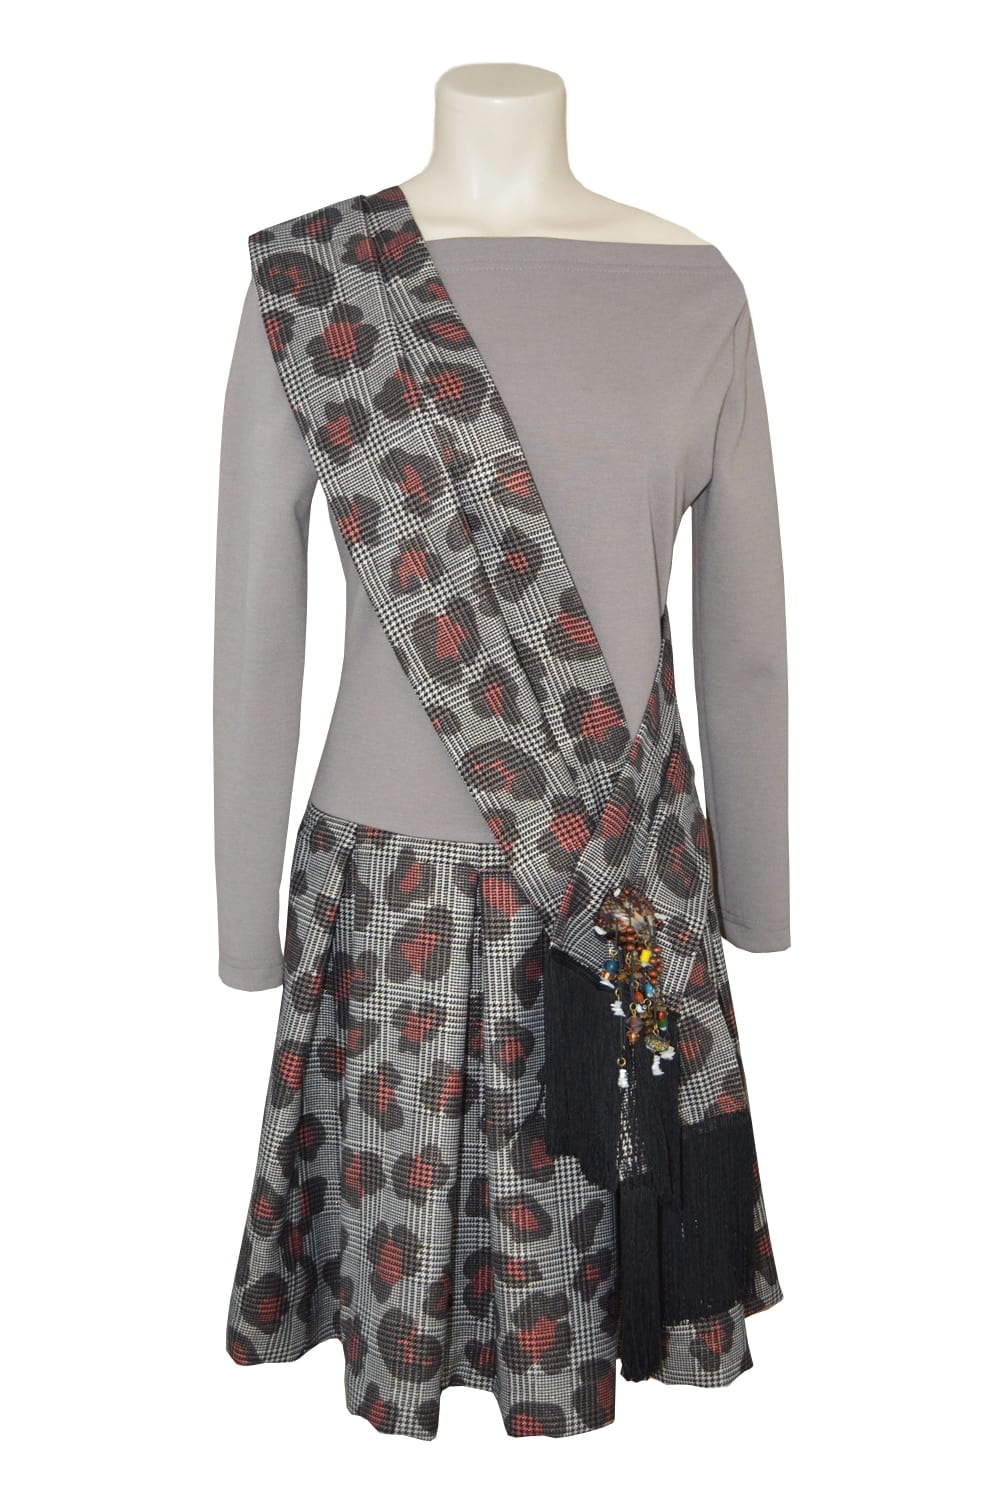 Wool dress. Prince of Wales skirt printed with large round pleats. Matching scarf in Prince of Wales. Shell fibula.